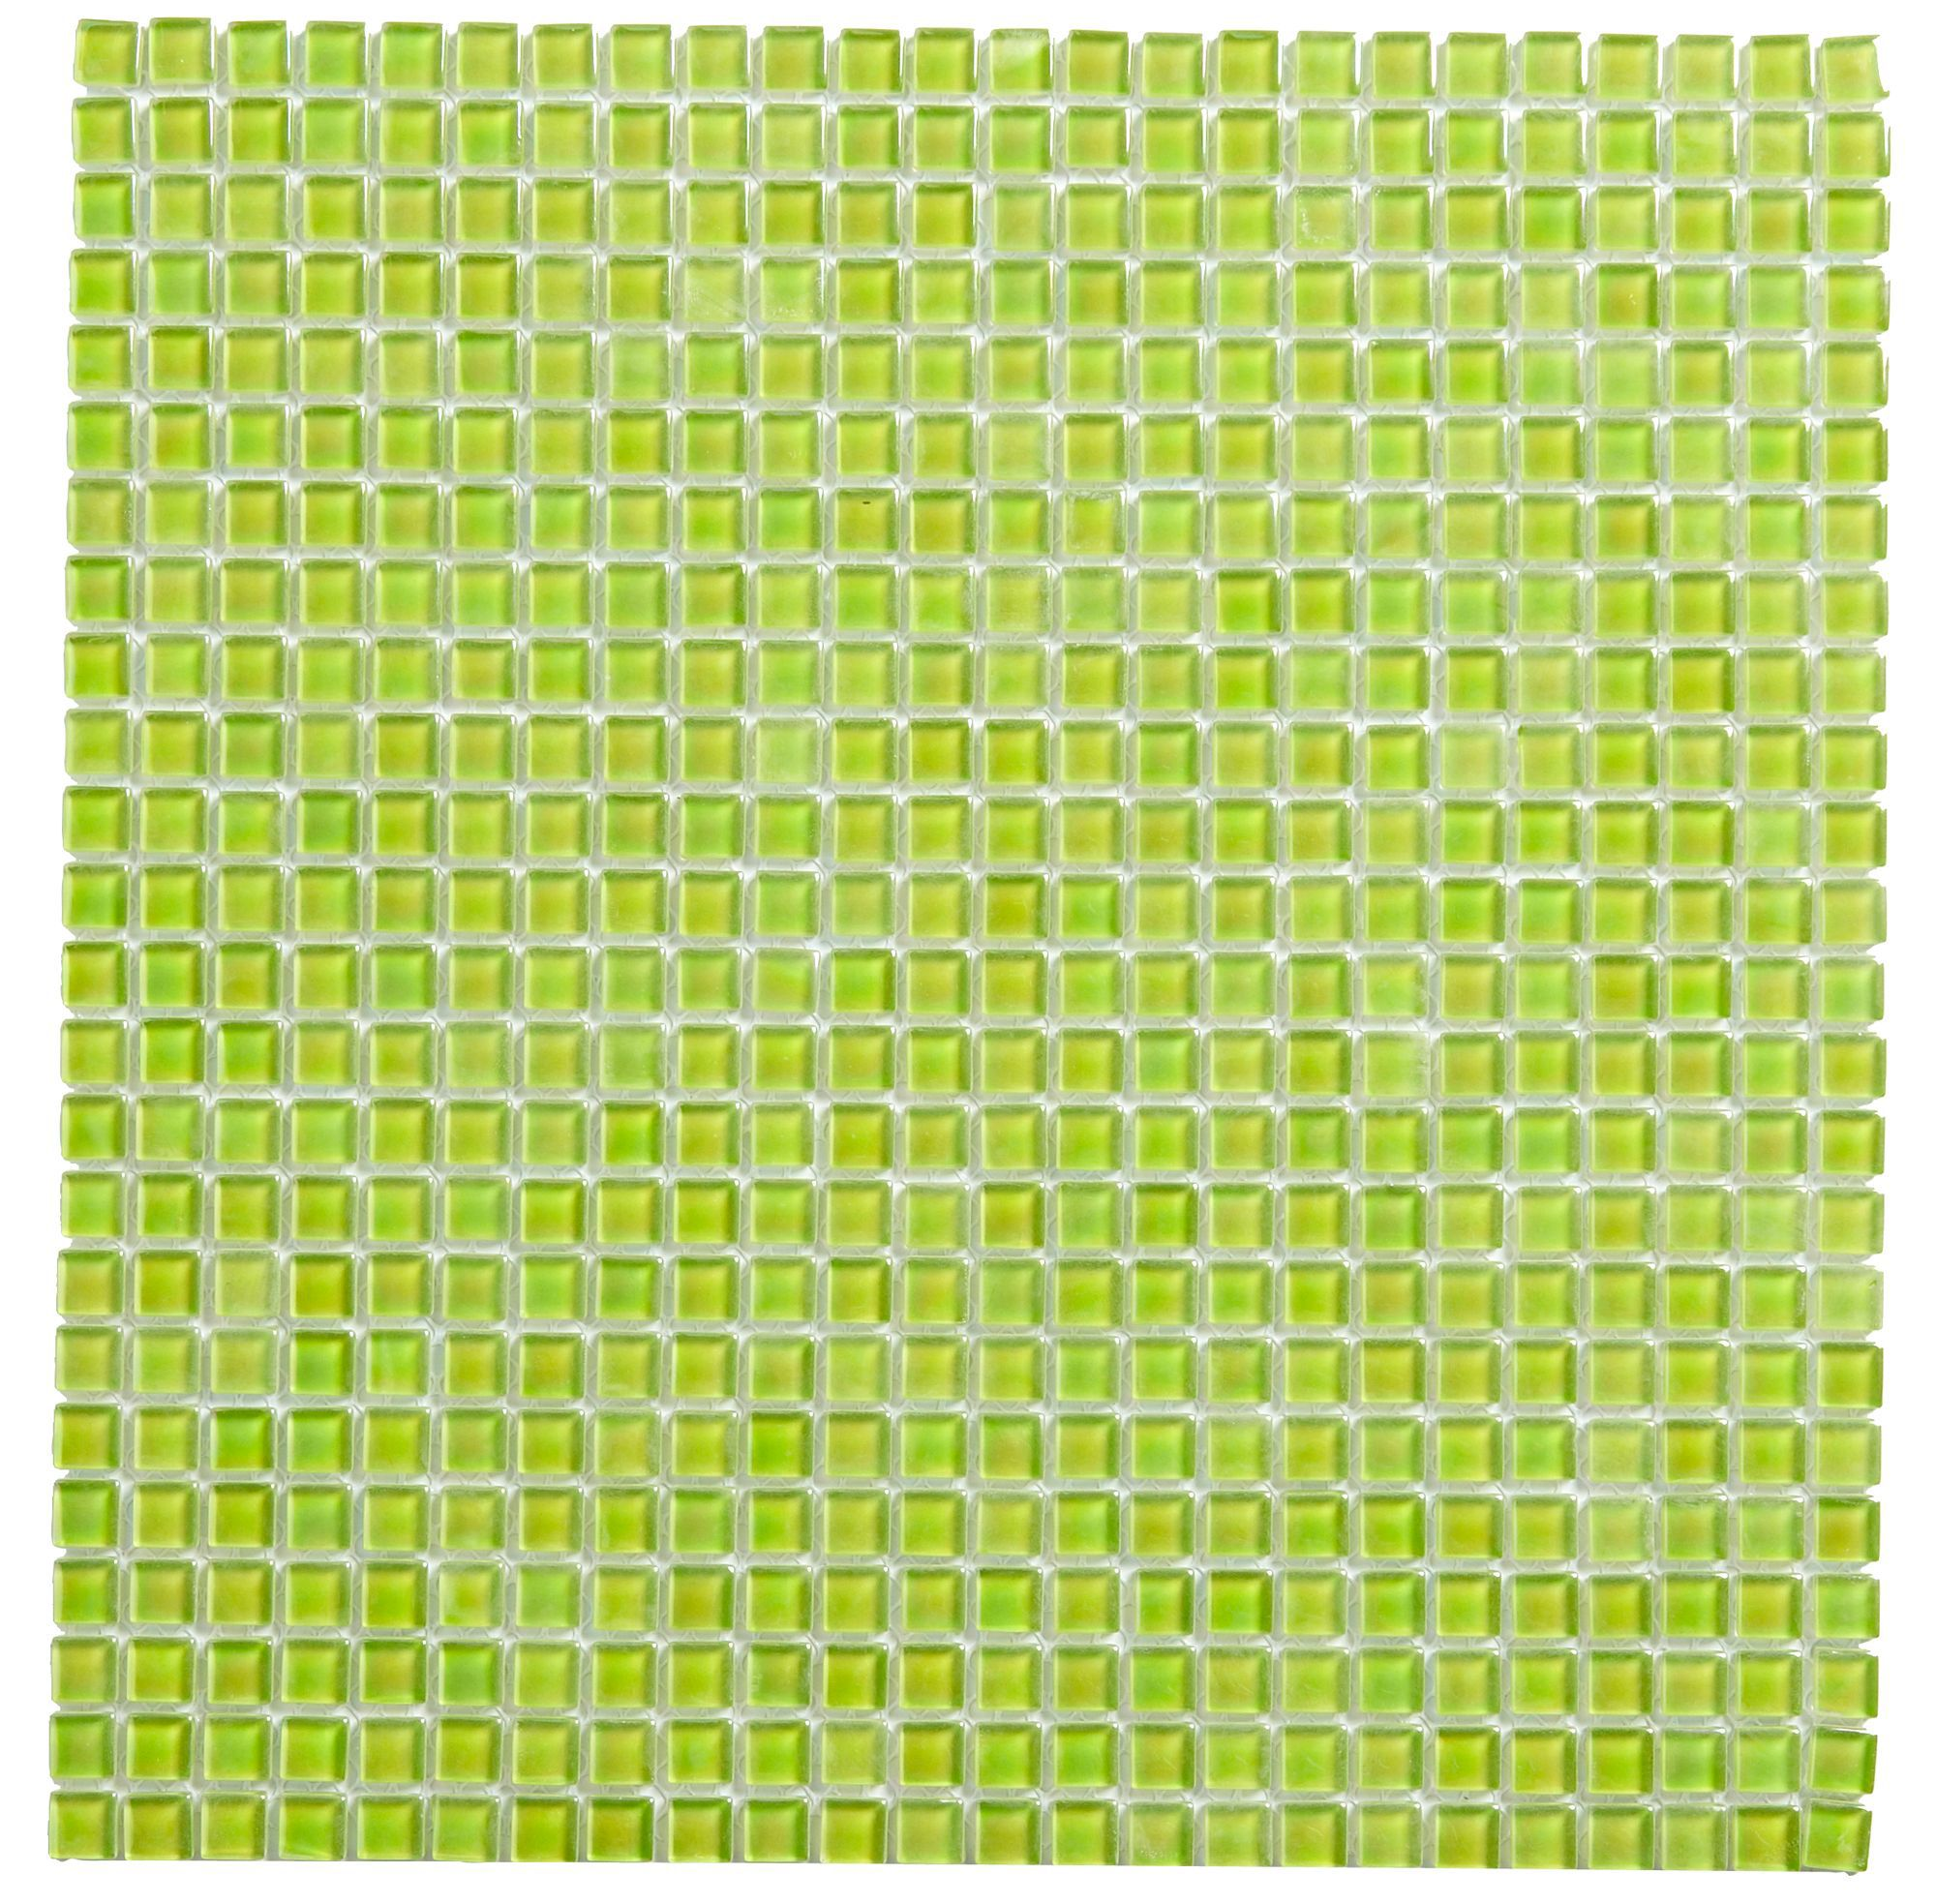 Green Glass Marble Mosaic Tile L 300mm W 300mm: Lime Patterned Glass Mosaic Tile, (L)300mm (W)300mm